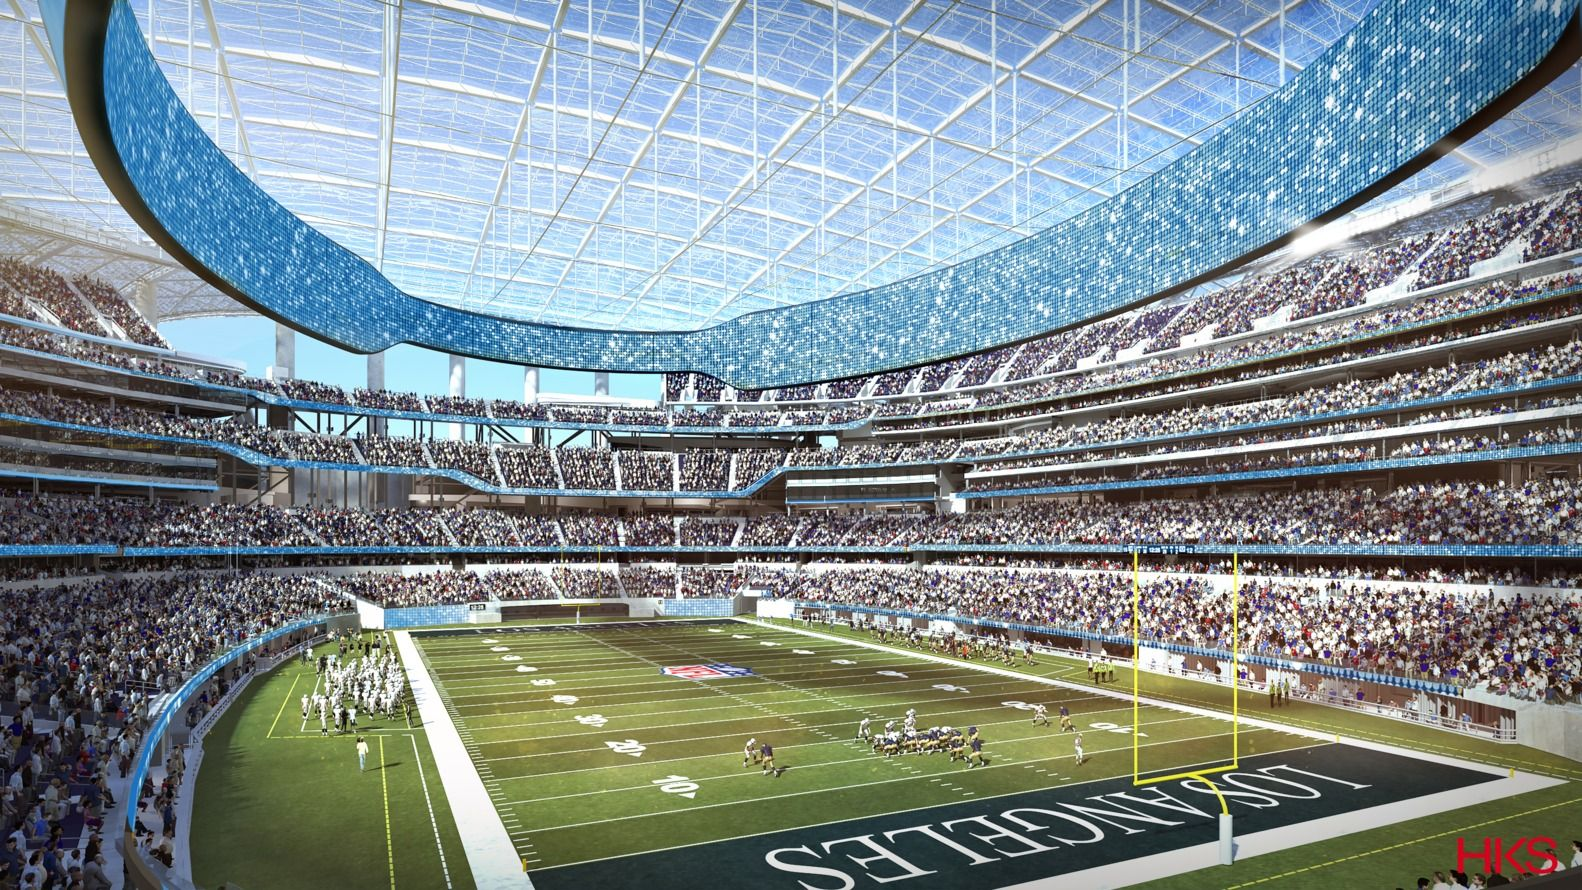 Gallery Of Hks Designed L A Stadium Will Be The Largest In The Nfl 4 Nfl Stadiums Sports Stadium Football Stadiums